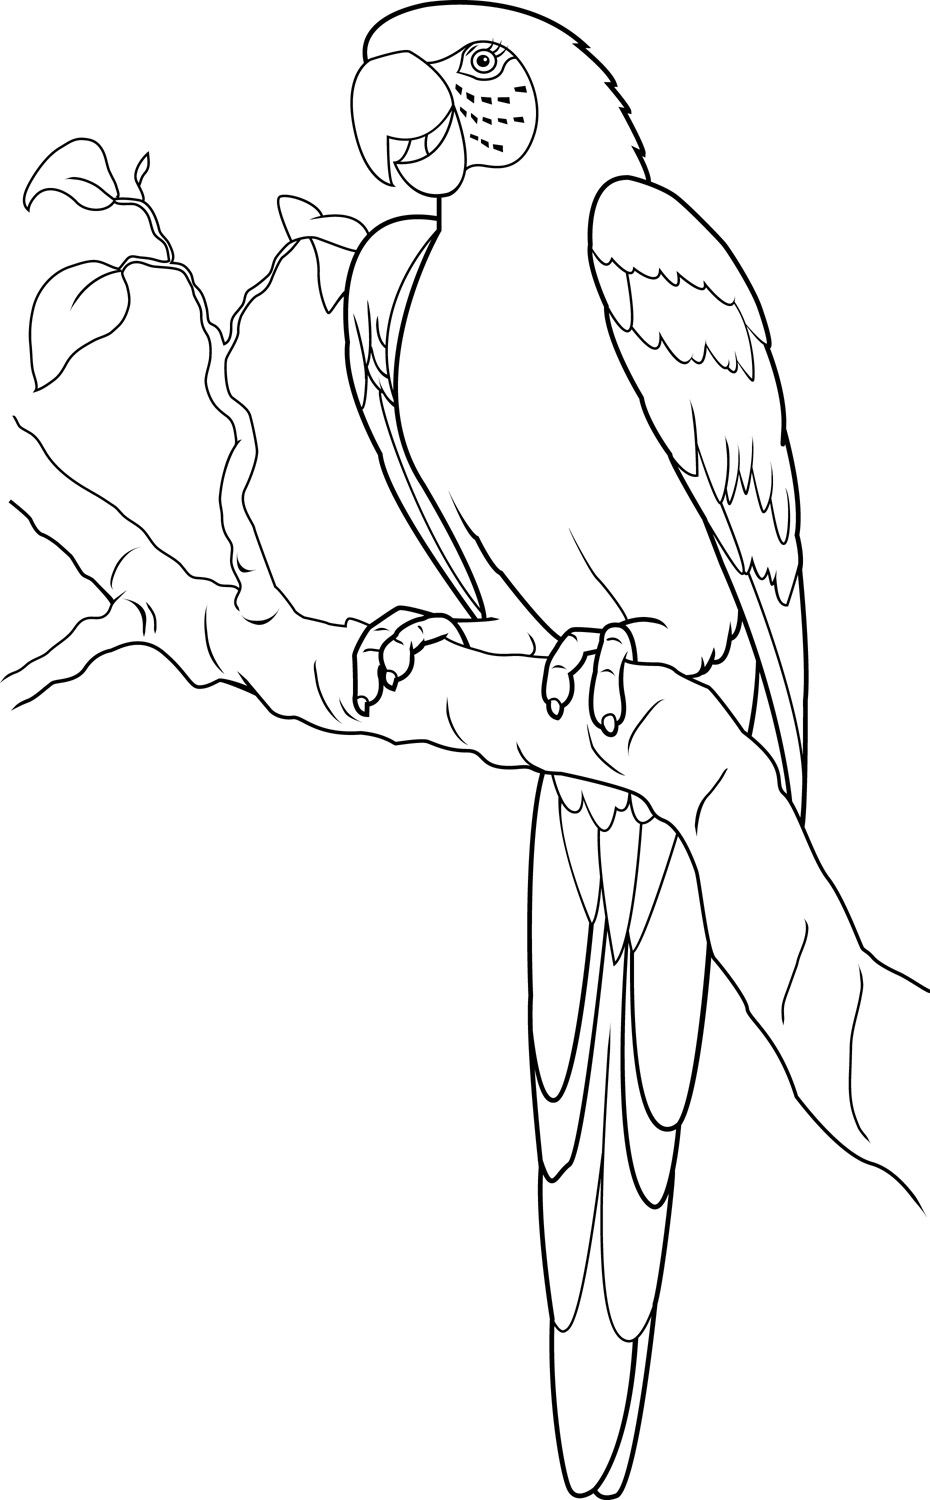 macaw - Google Search | Line Drawings for Literacy | Pinterest ...